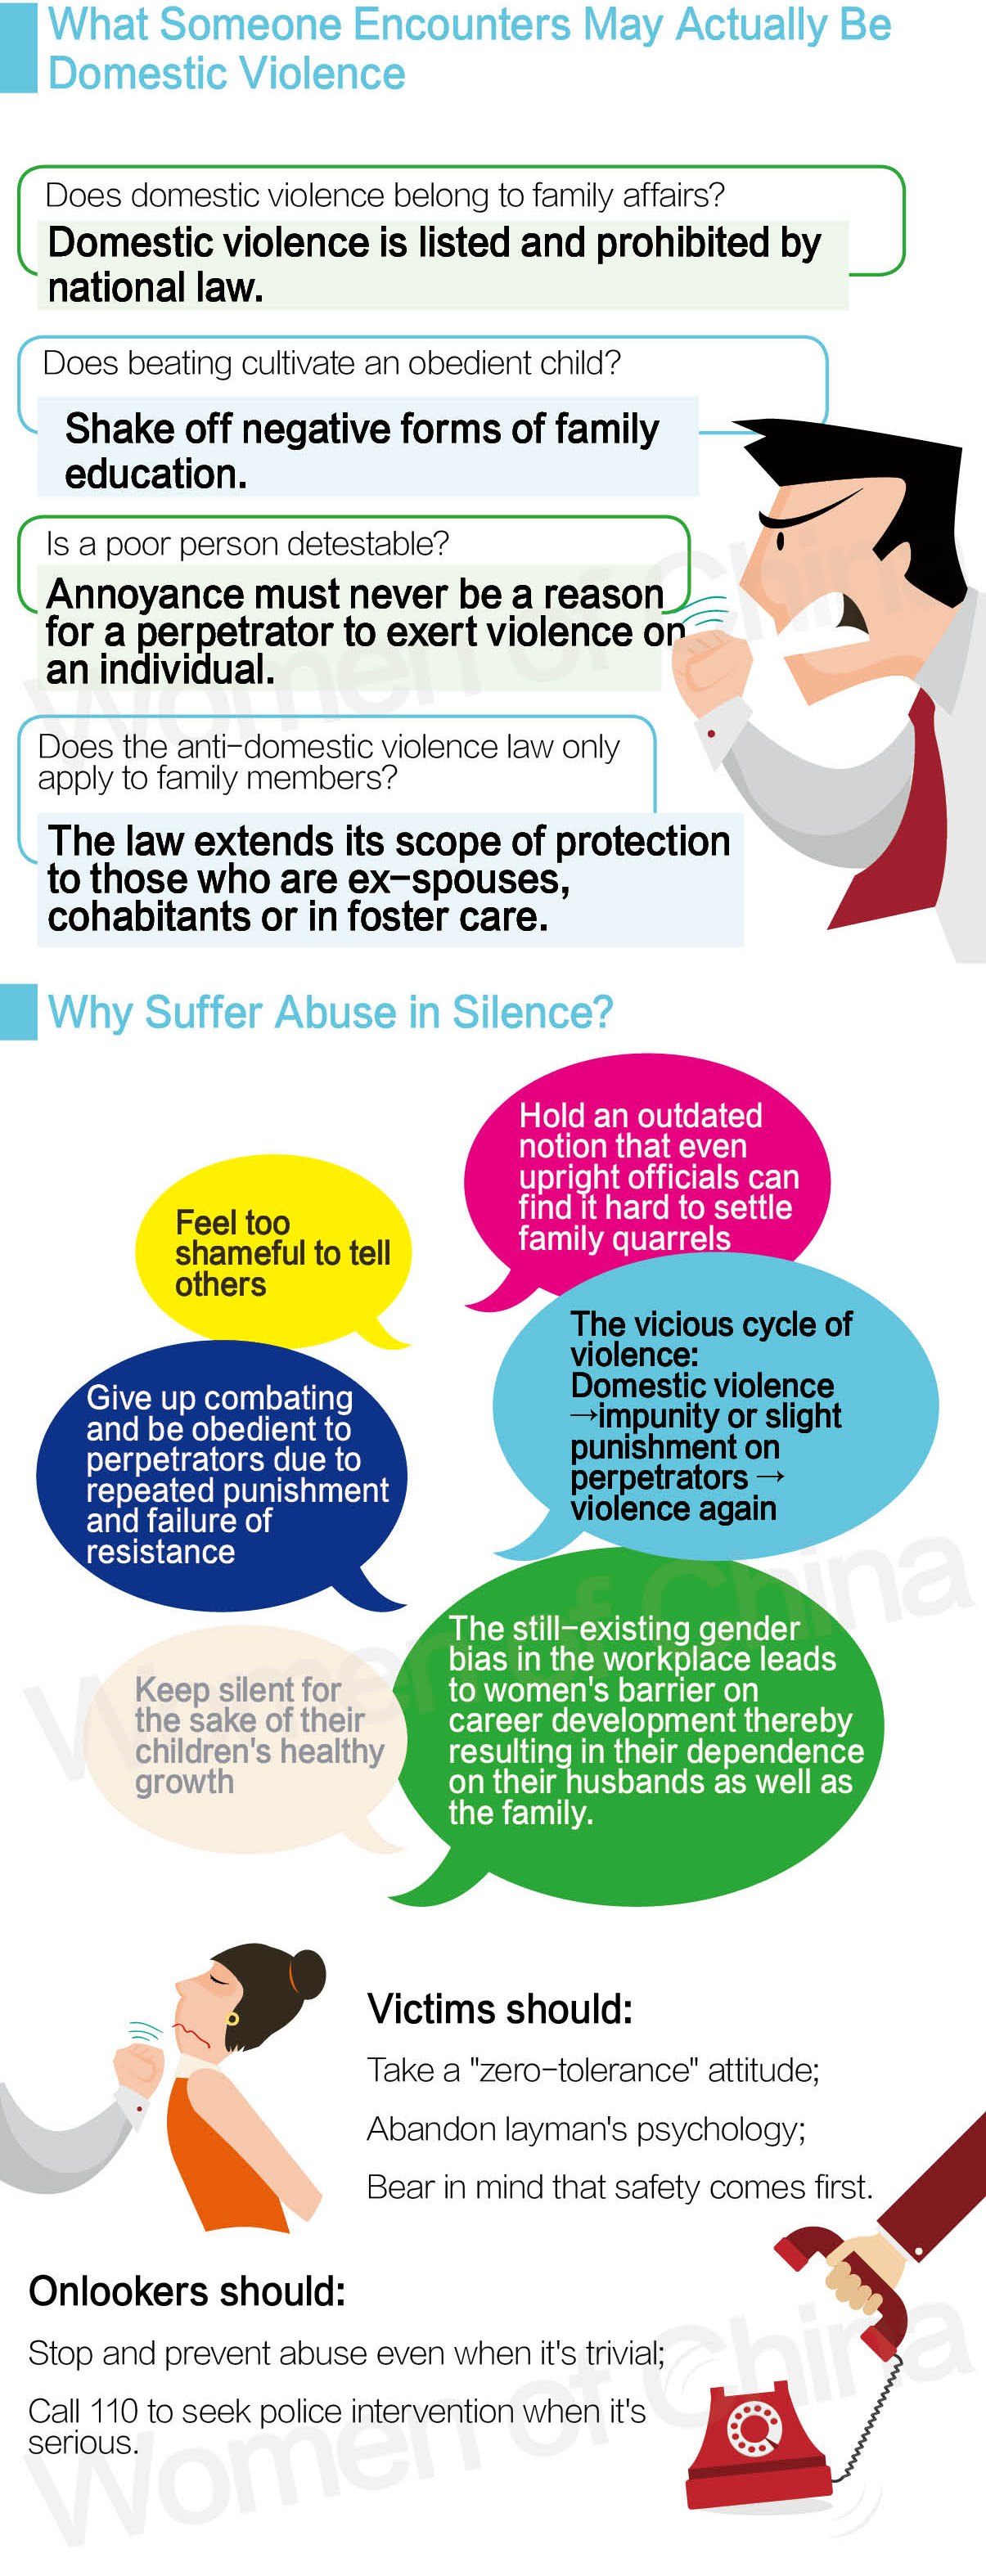 stricter laws and punishment should be imposed against domestic violence offenders Laws against domestic violence in pakistan are and identifying domestic crimes and the punishment of laws against child abuse should be stricter.